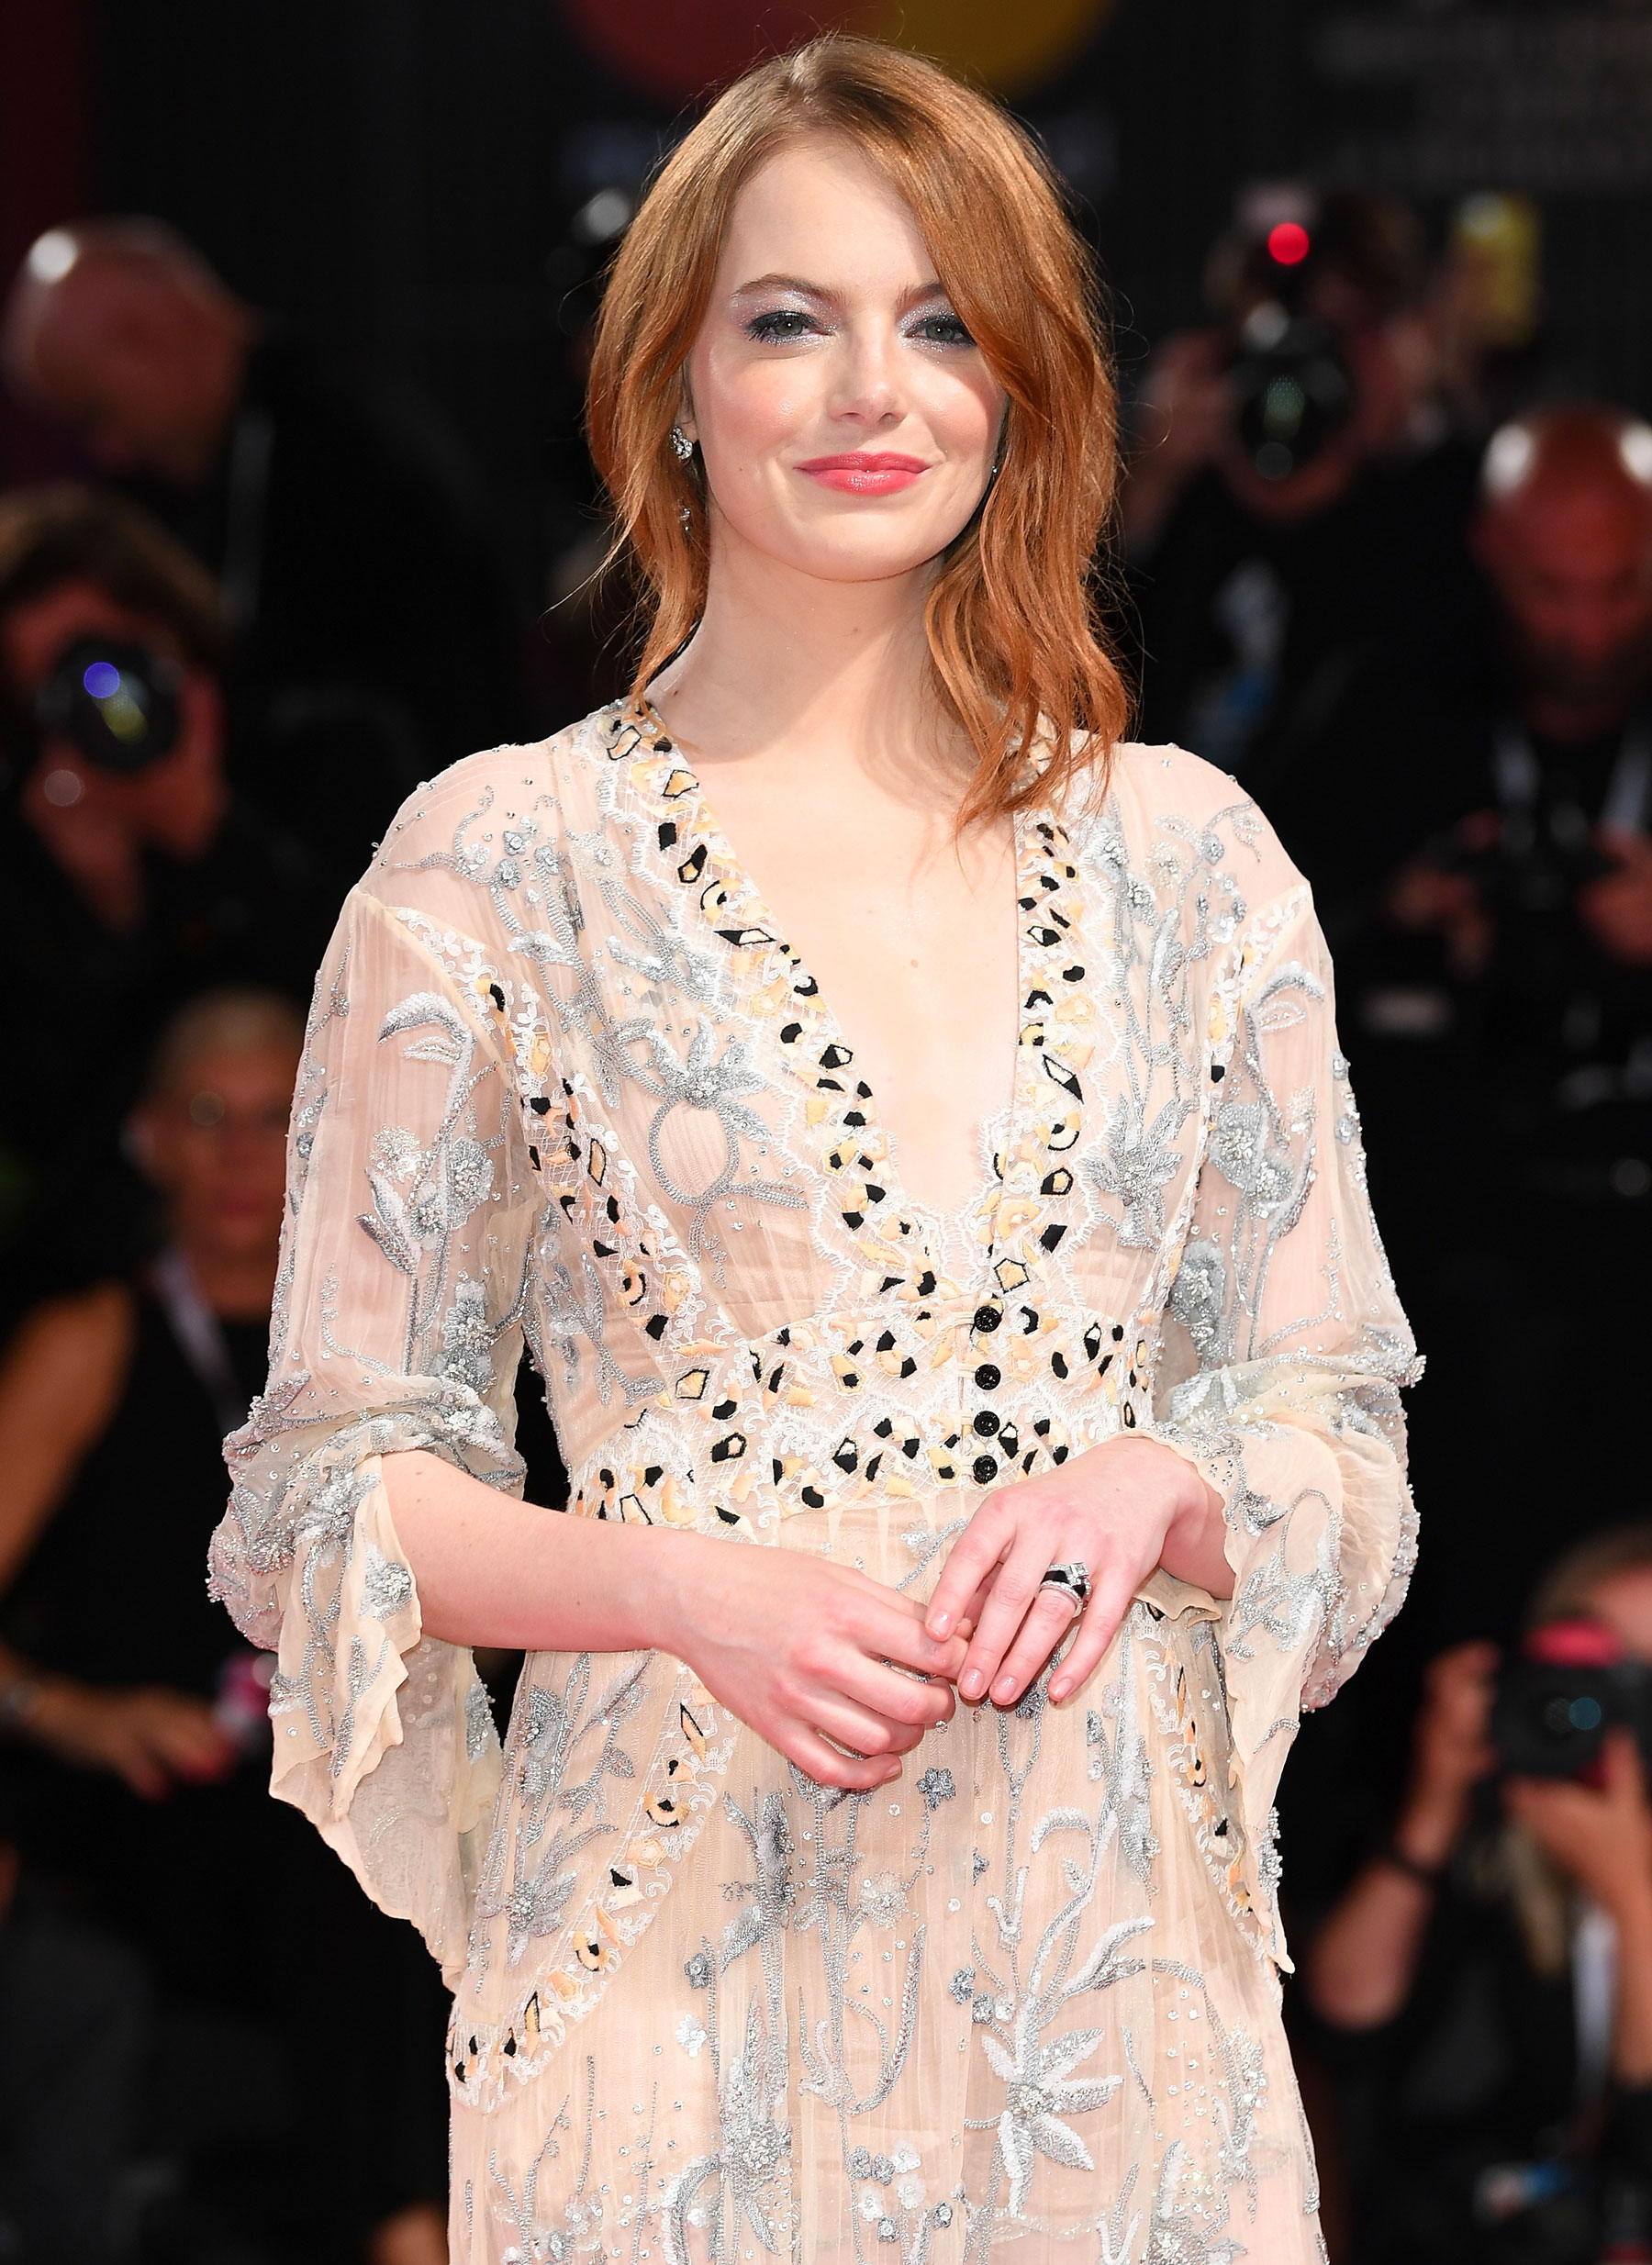 Emma Stone Says She Felt 'Gloomy for About a Week' After Turning 30